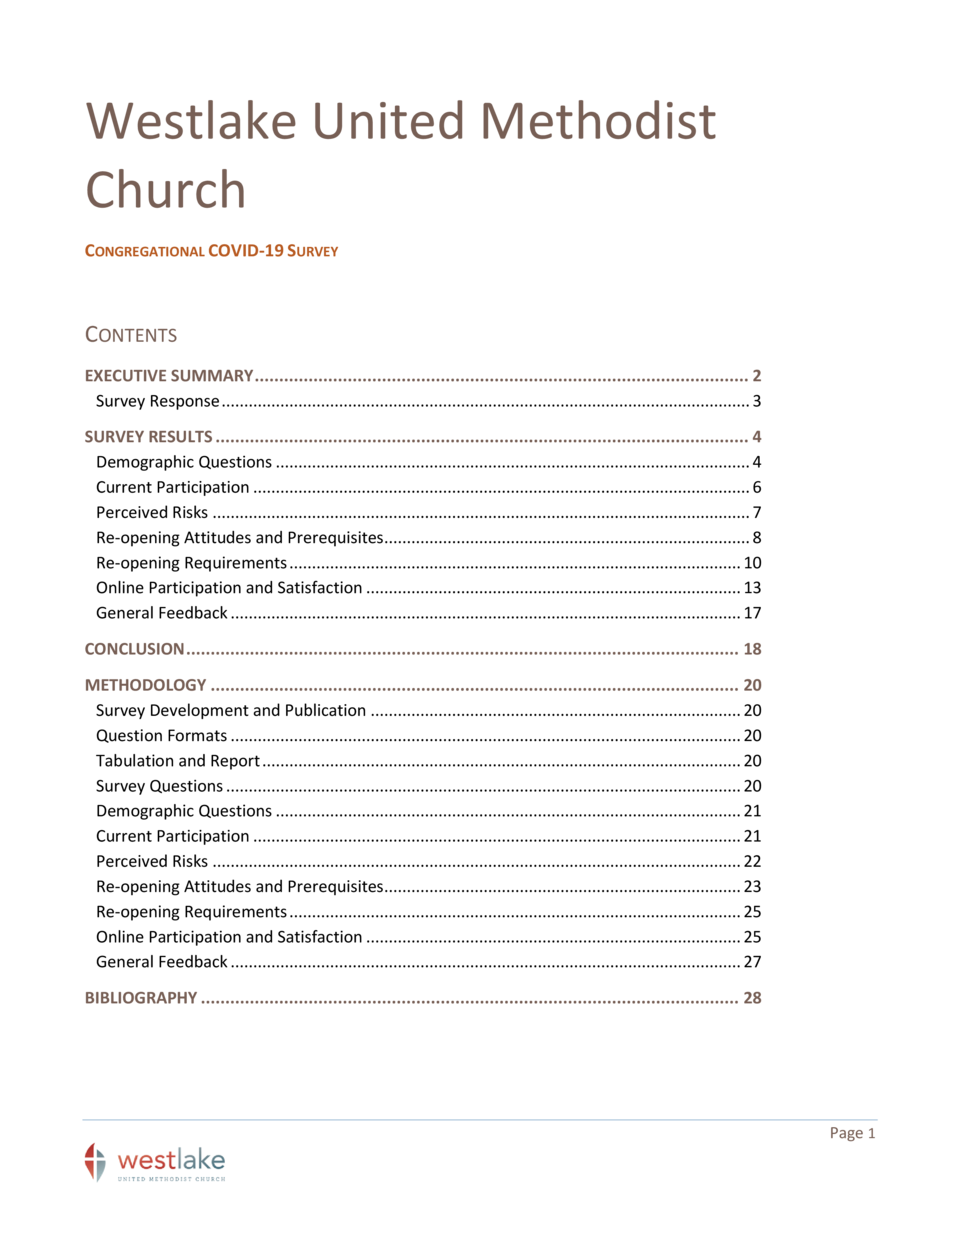 Westlake United Methodist Church CONGREGATIONAL COVID-19 SURVEY  CONTENTS EXECUTIVE SUMMARY .................................